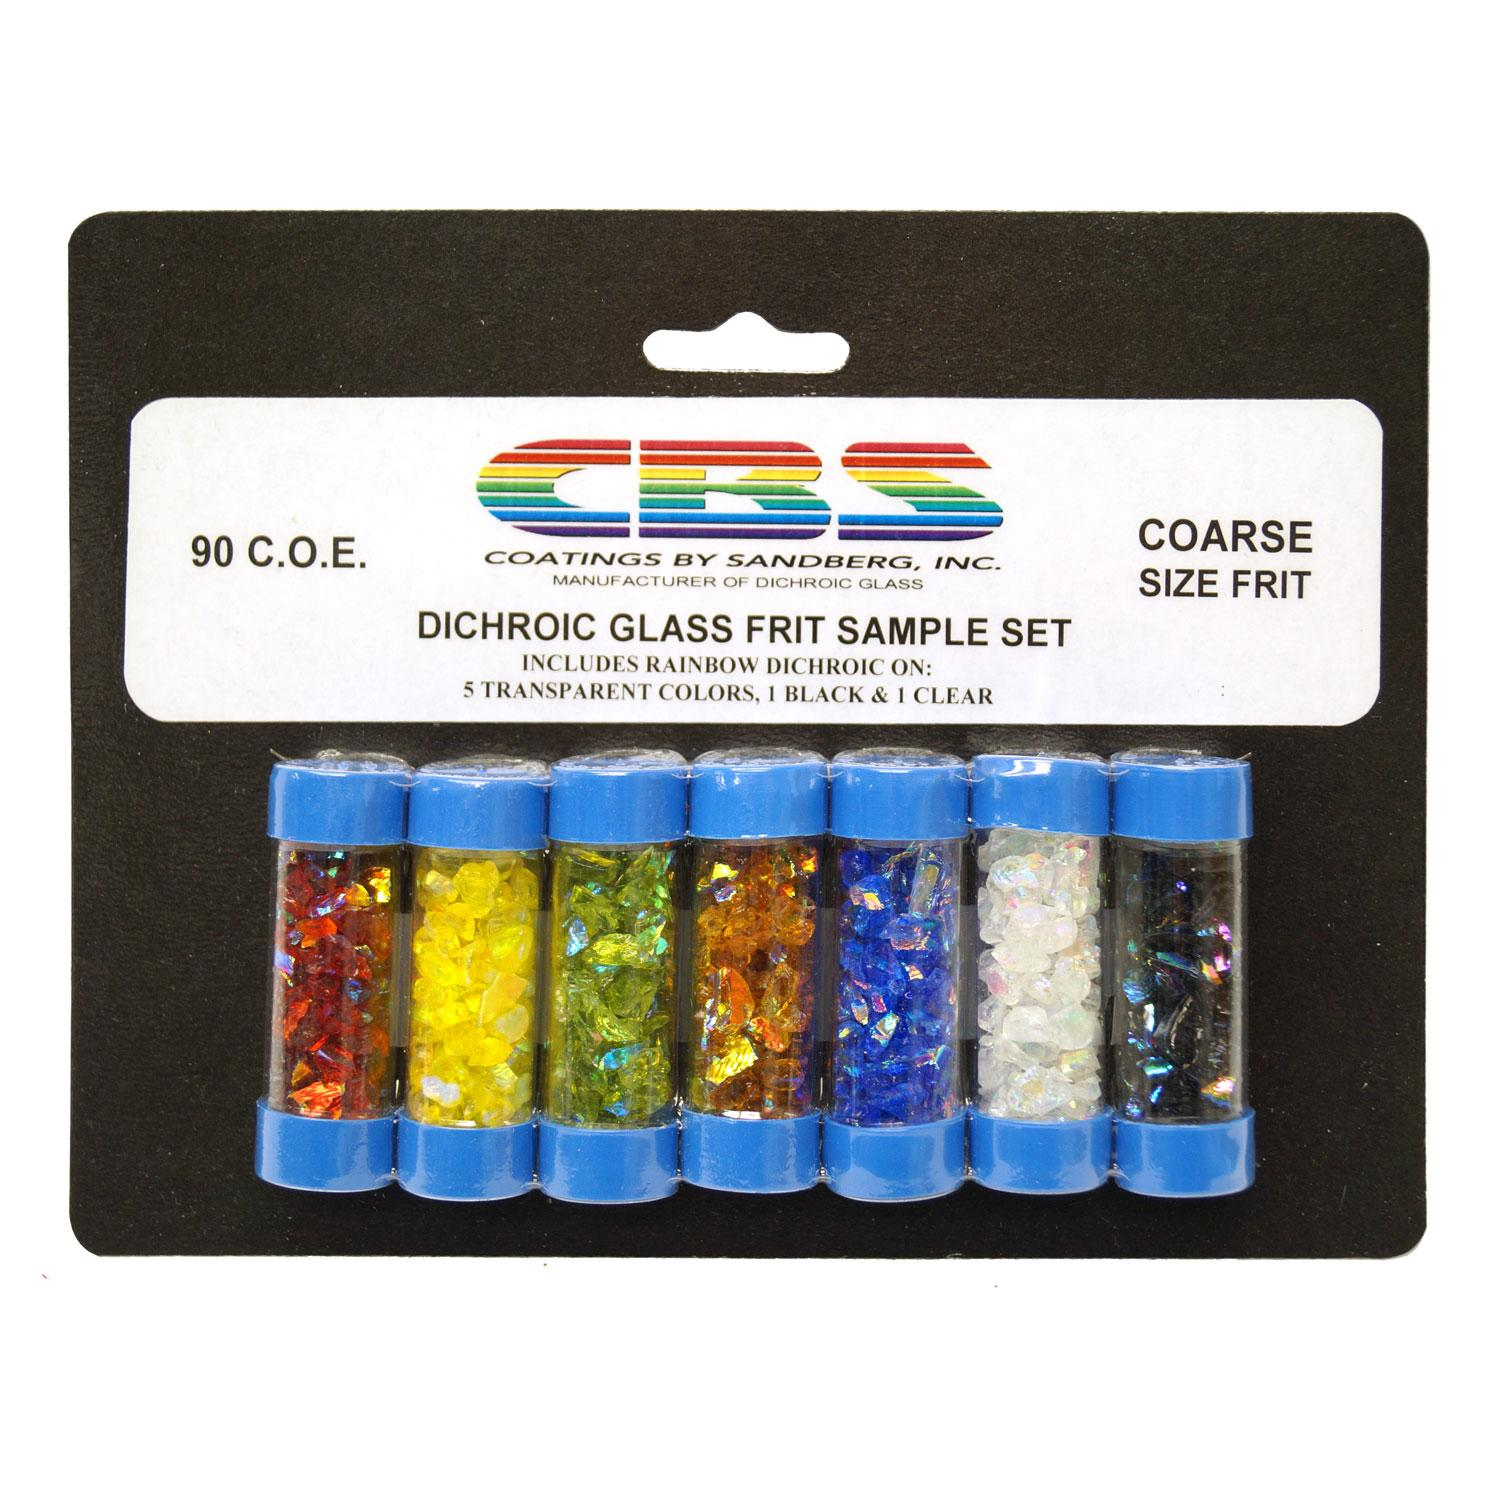 CBS Colored Dichroic Frit Assortment - 90 COE